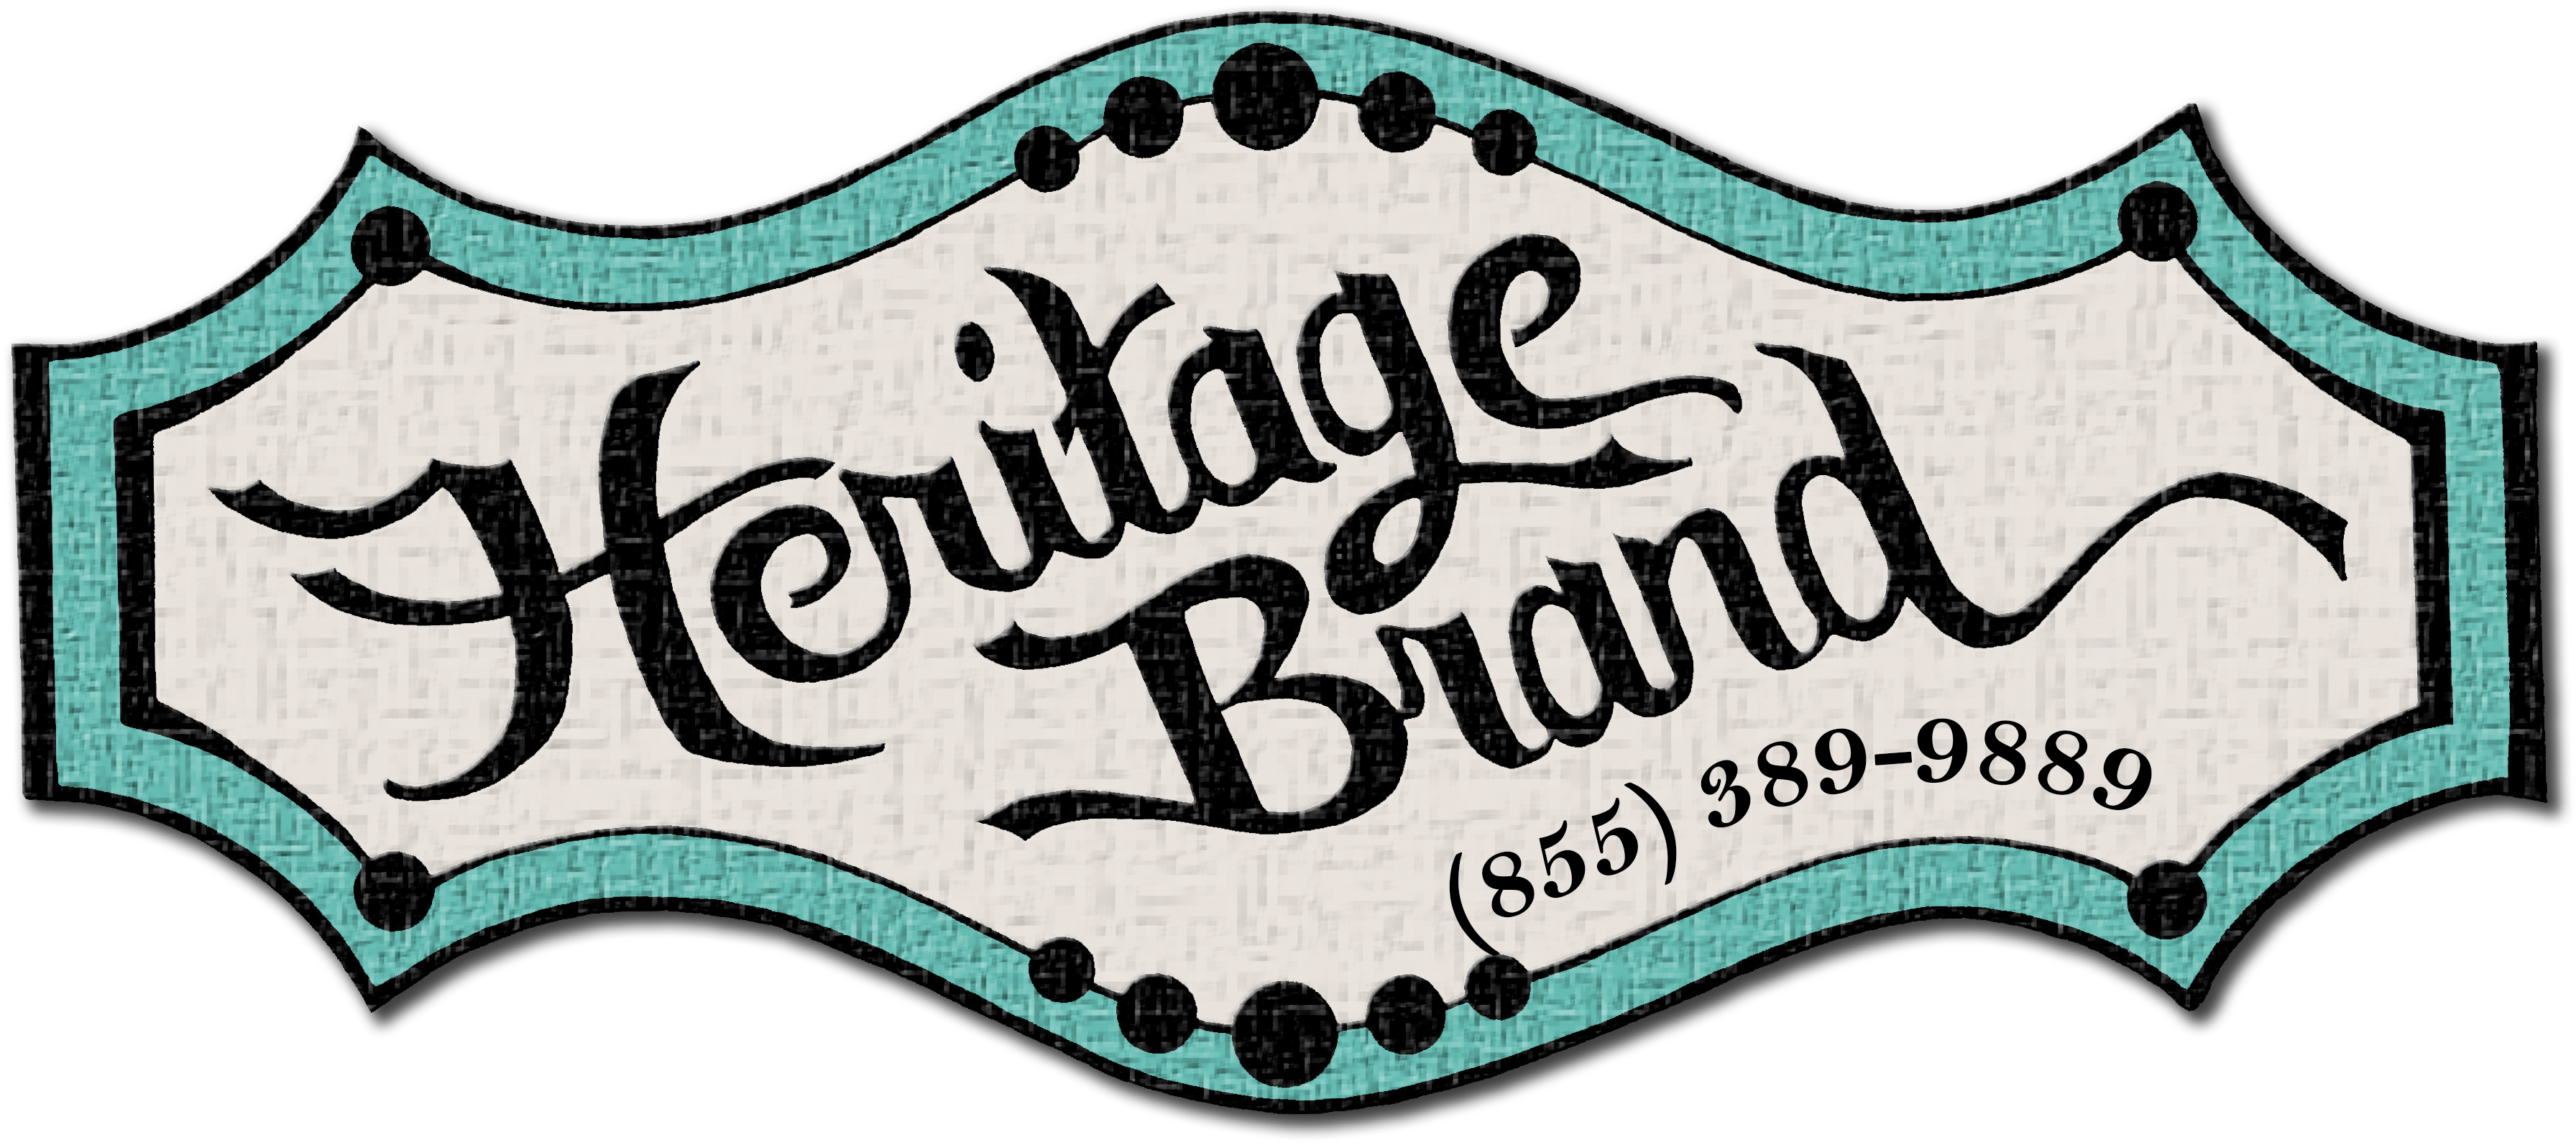 Heritage Brand Logo turq and tan copy.jpg